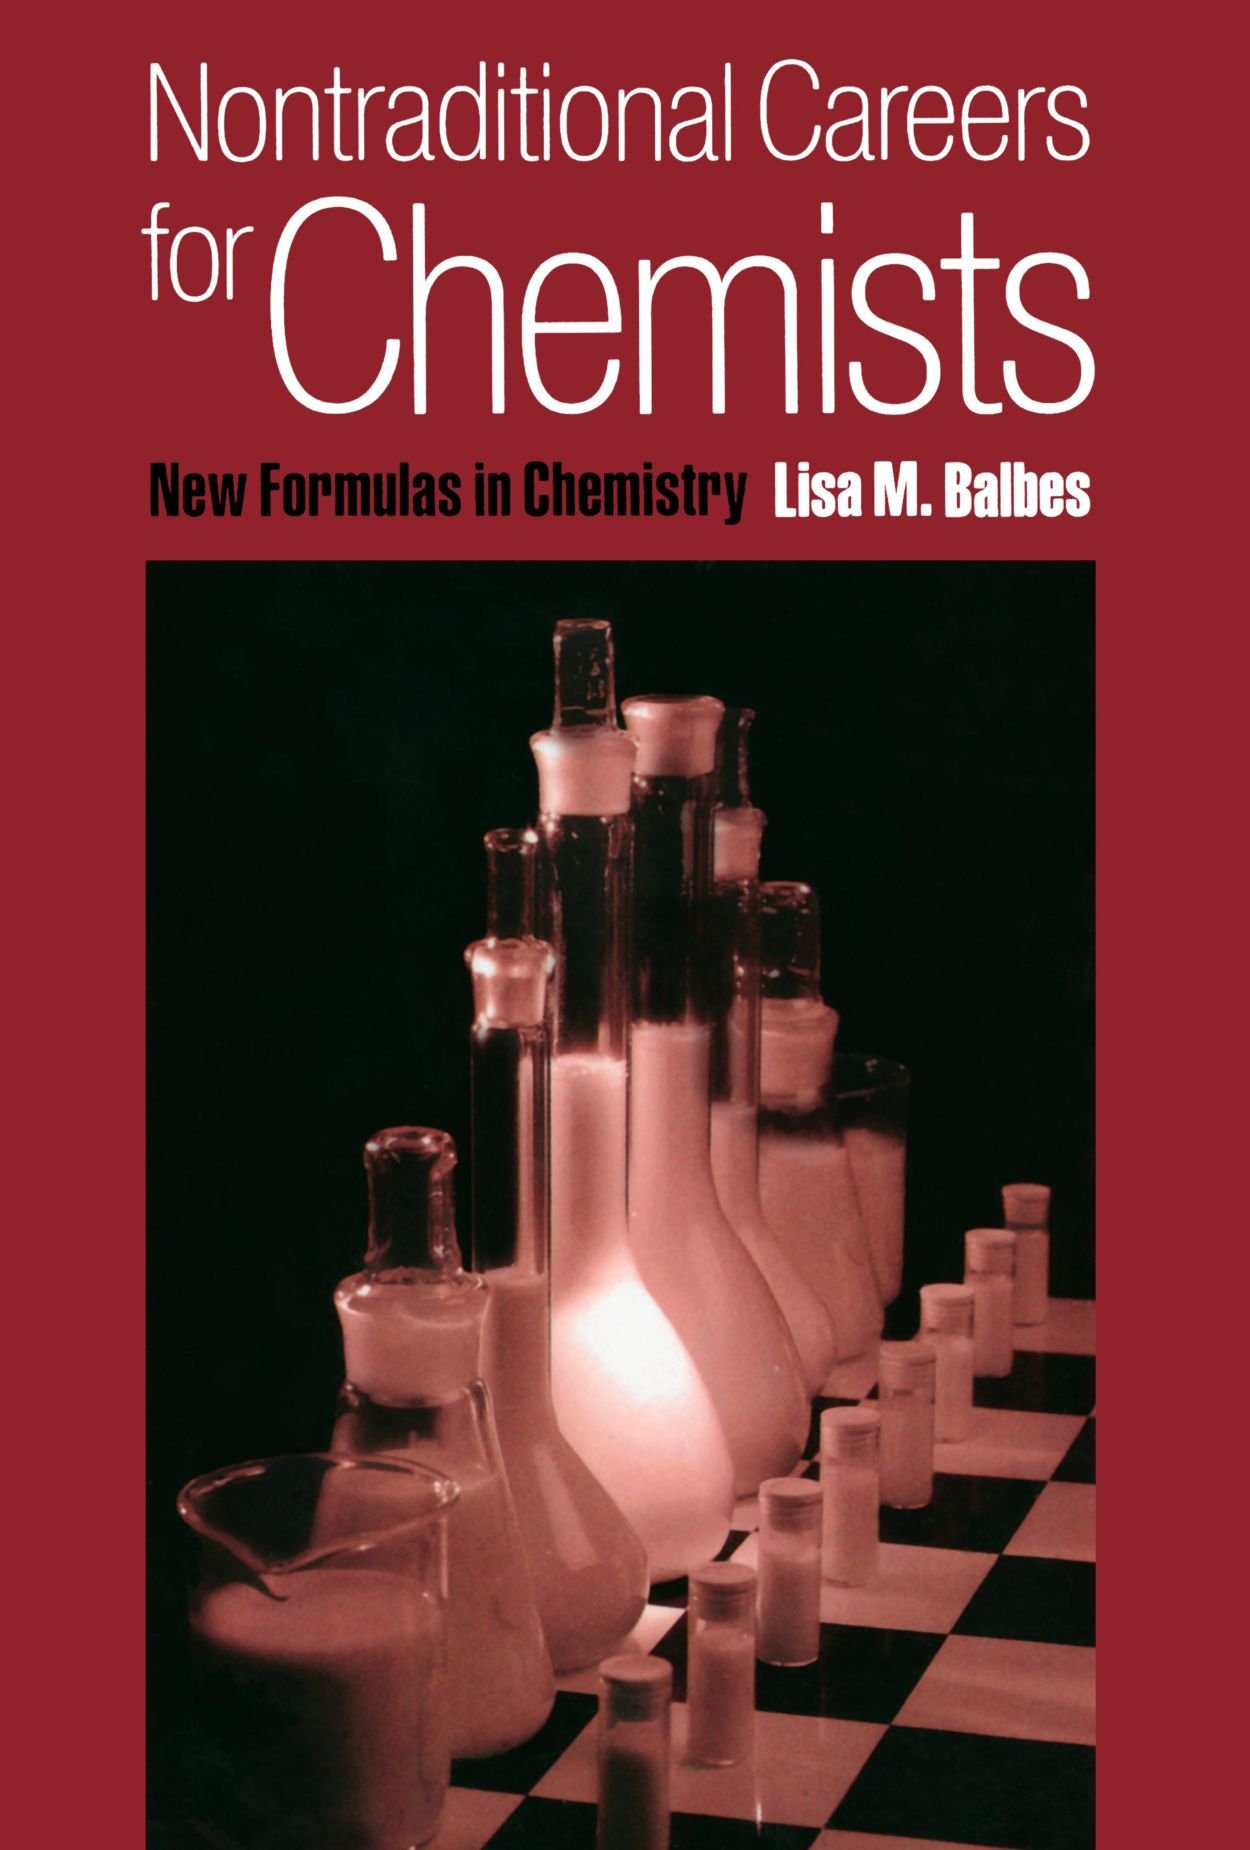 nontraditional careers for chemists new formulas in chemistry nontraditional careers for chemists new formulas in chemistry amazon co uk lisa m balbes 9780195183672 books